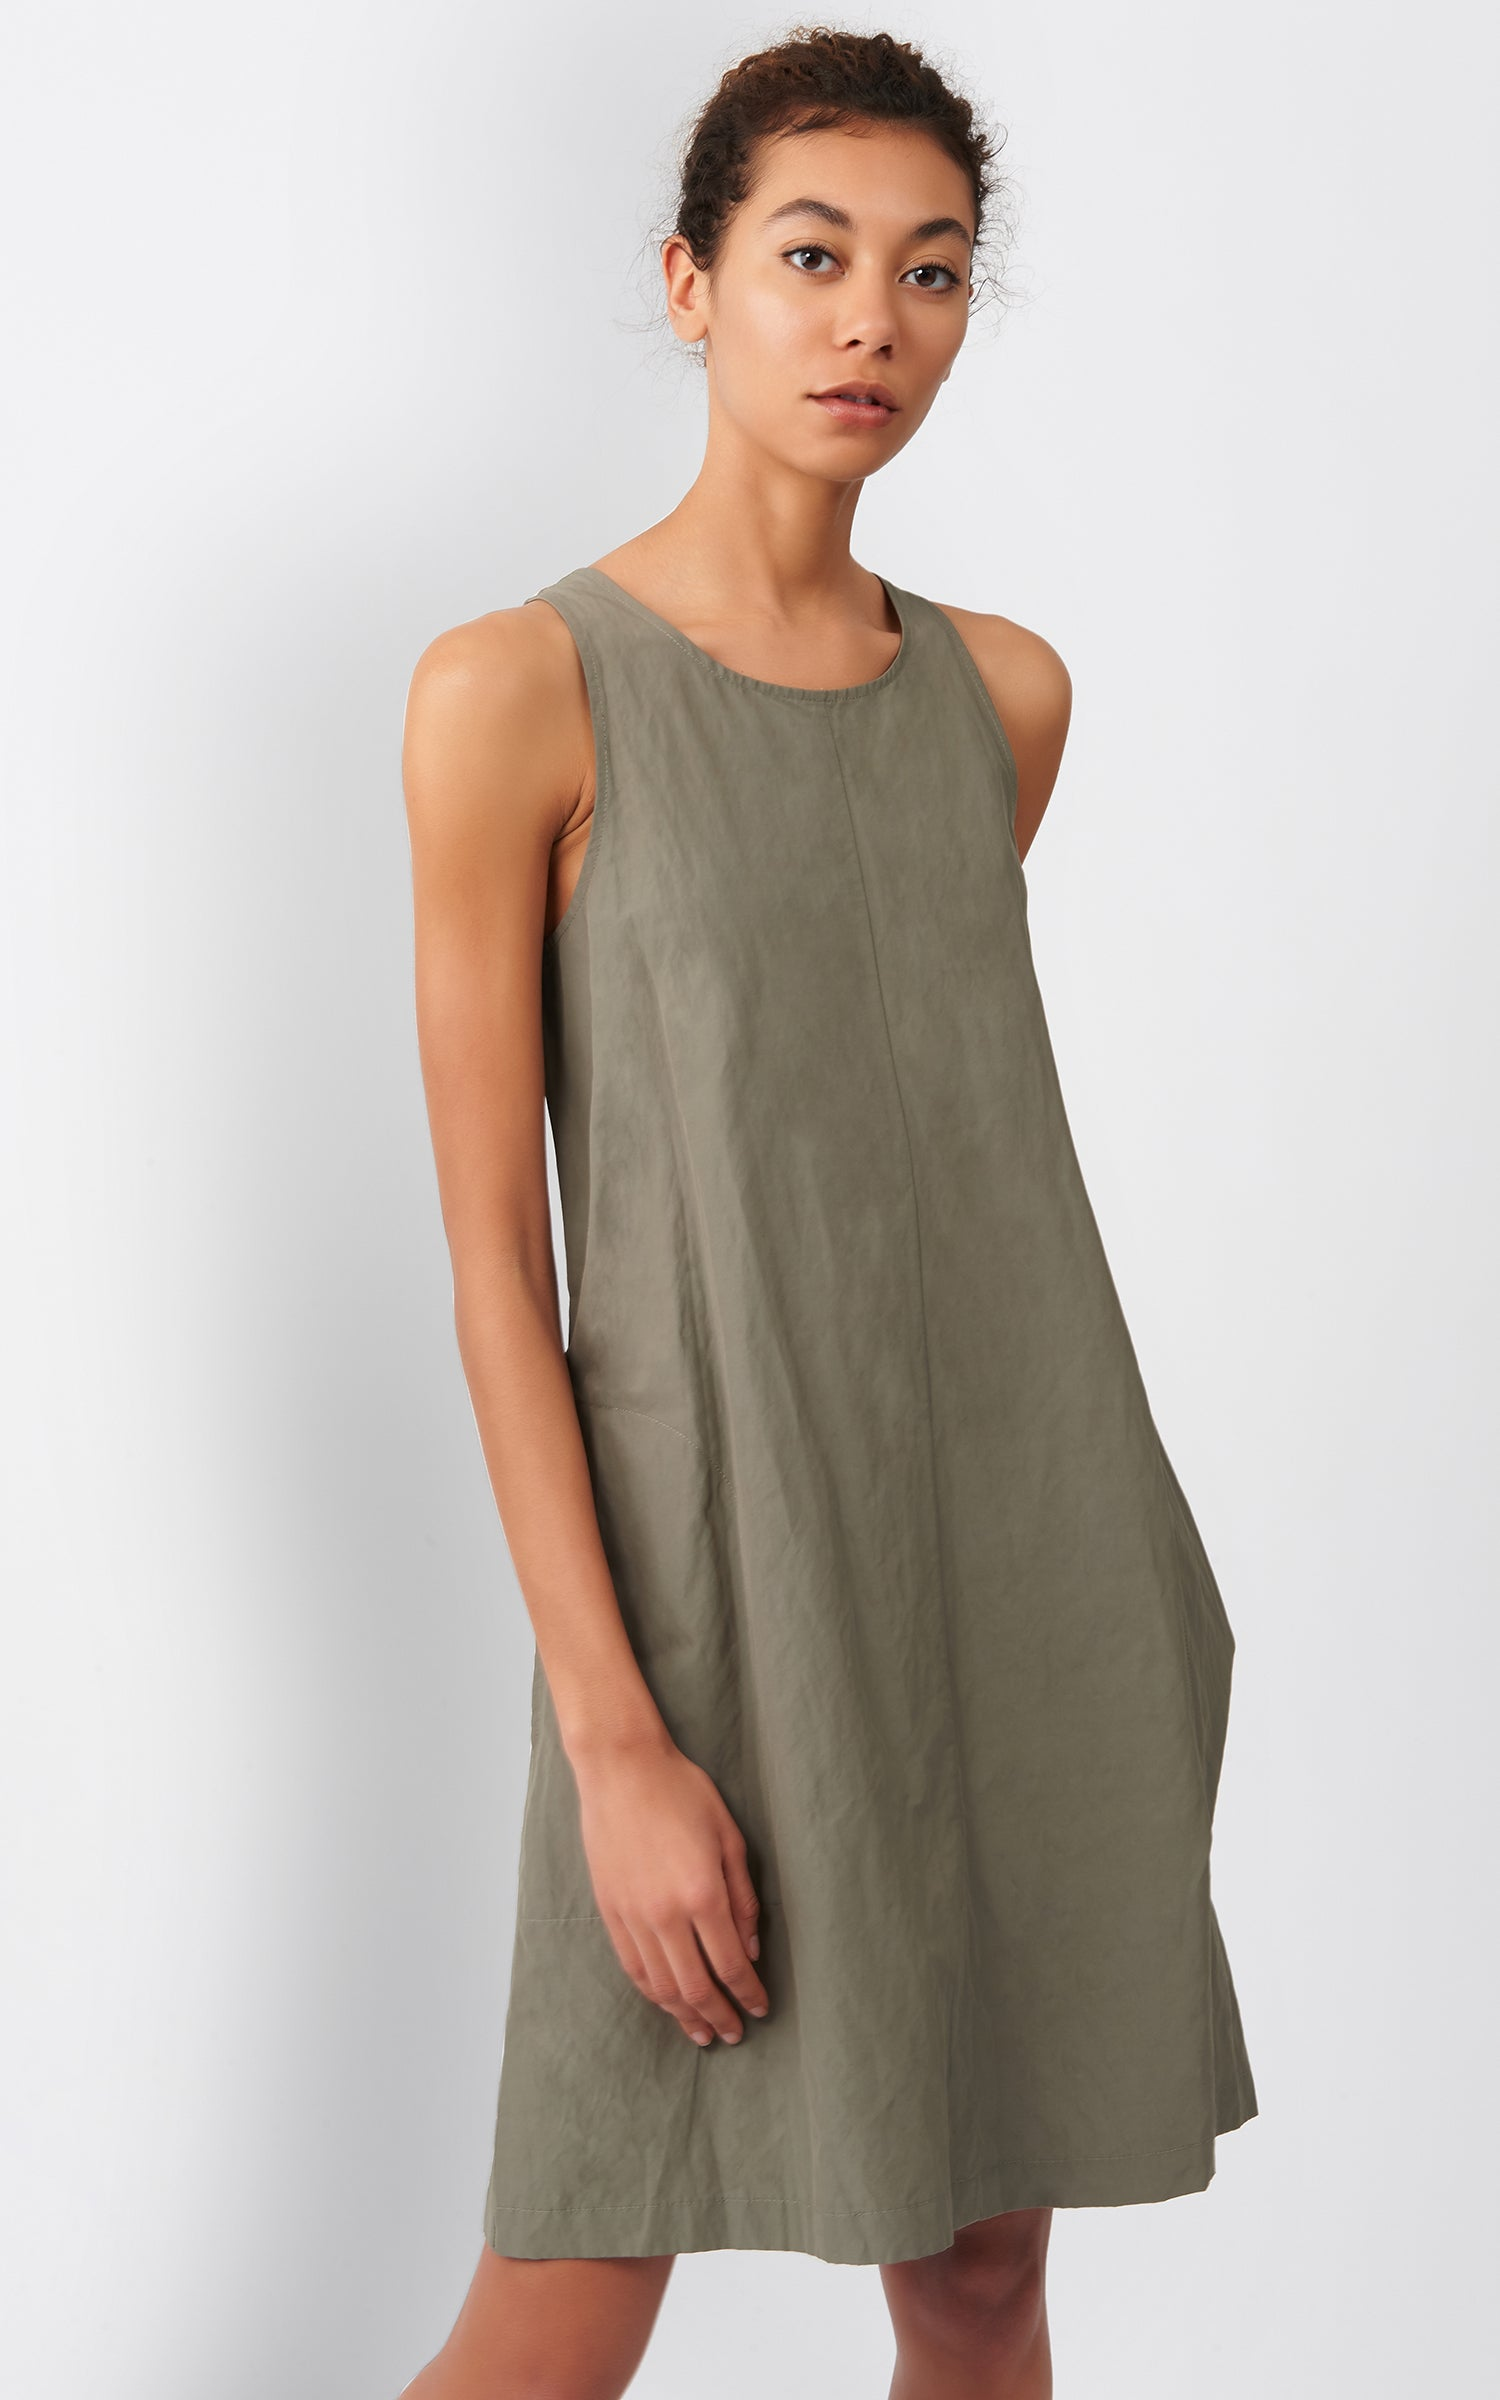 TRAPEZE DRESS - OLIVE COTTON/NYLON